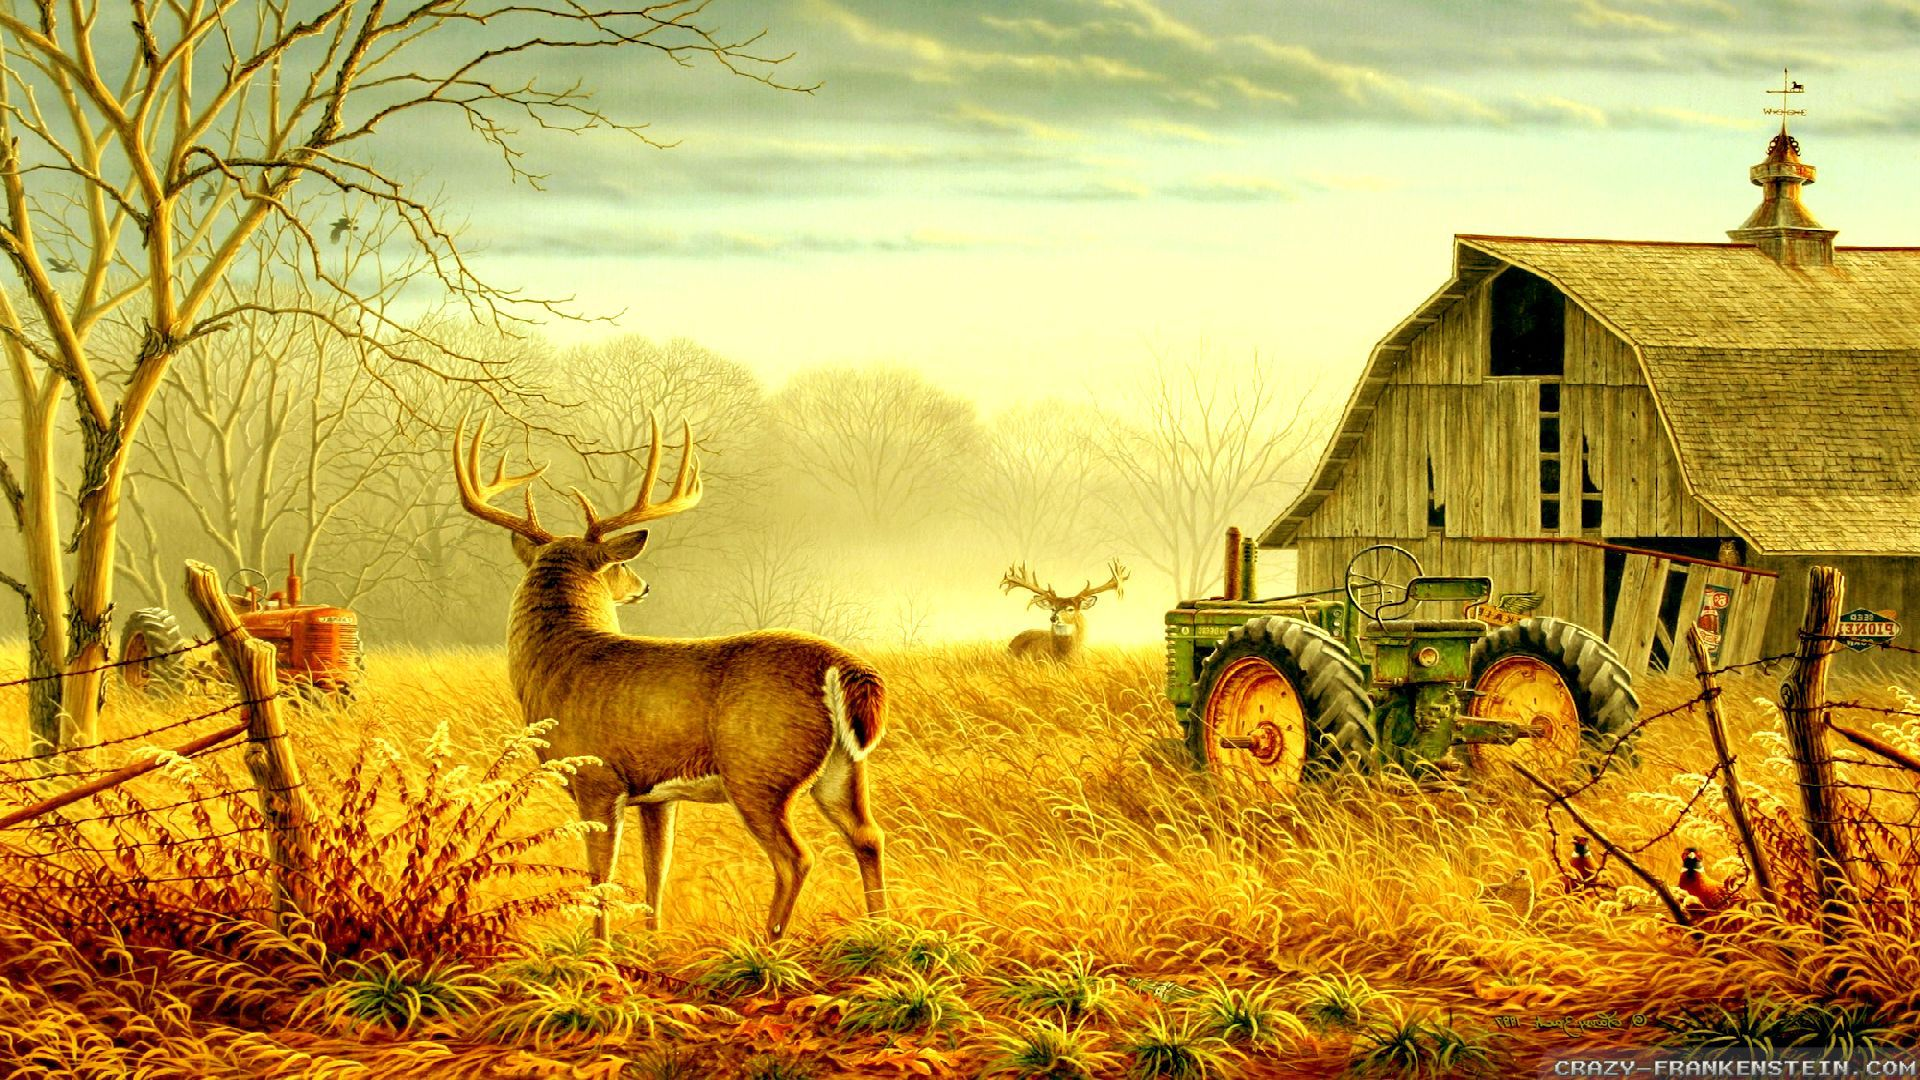 1366x768 hd desktop wallpapers country - photo #32